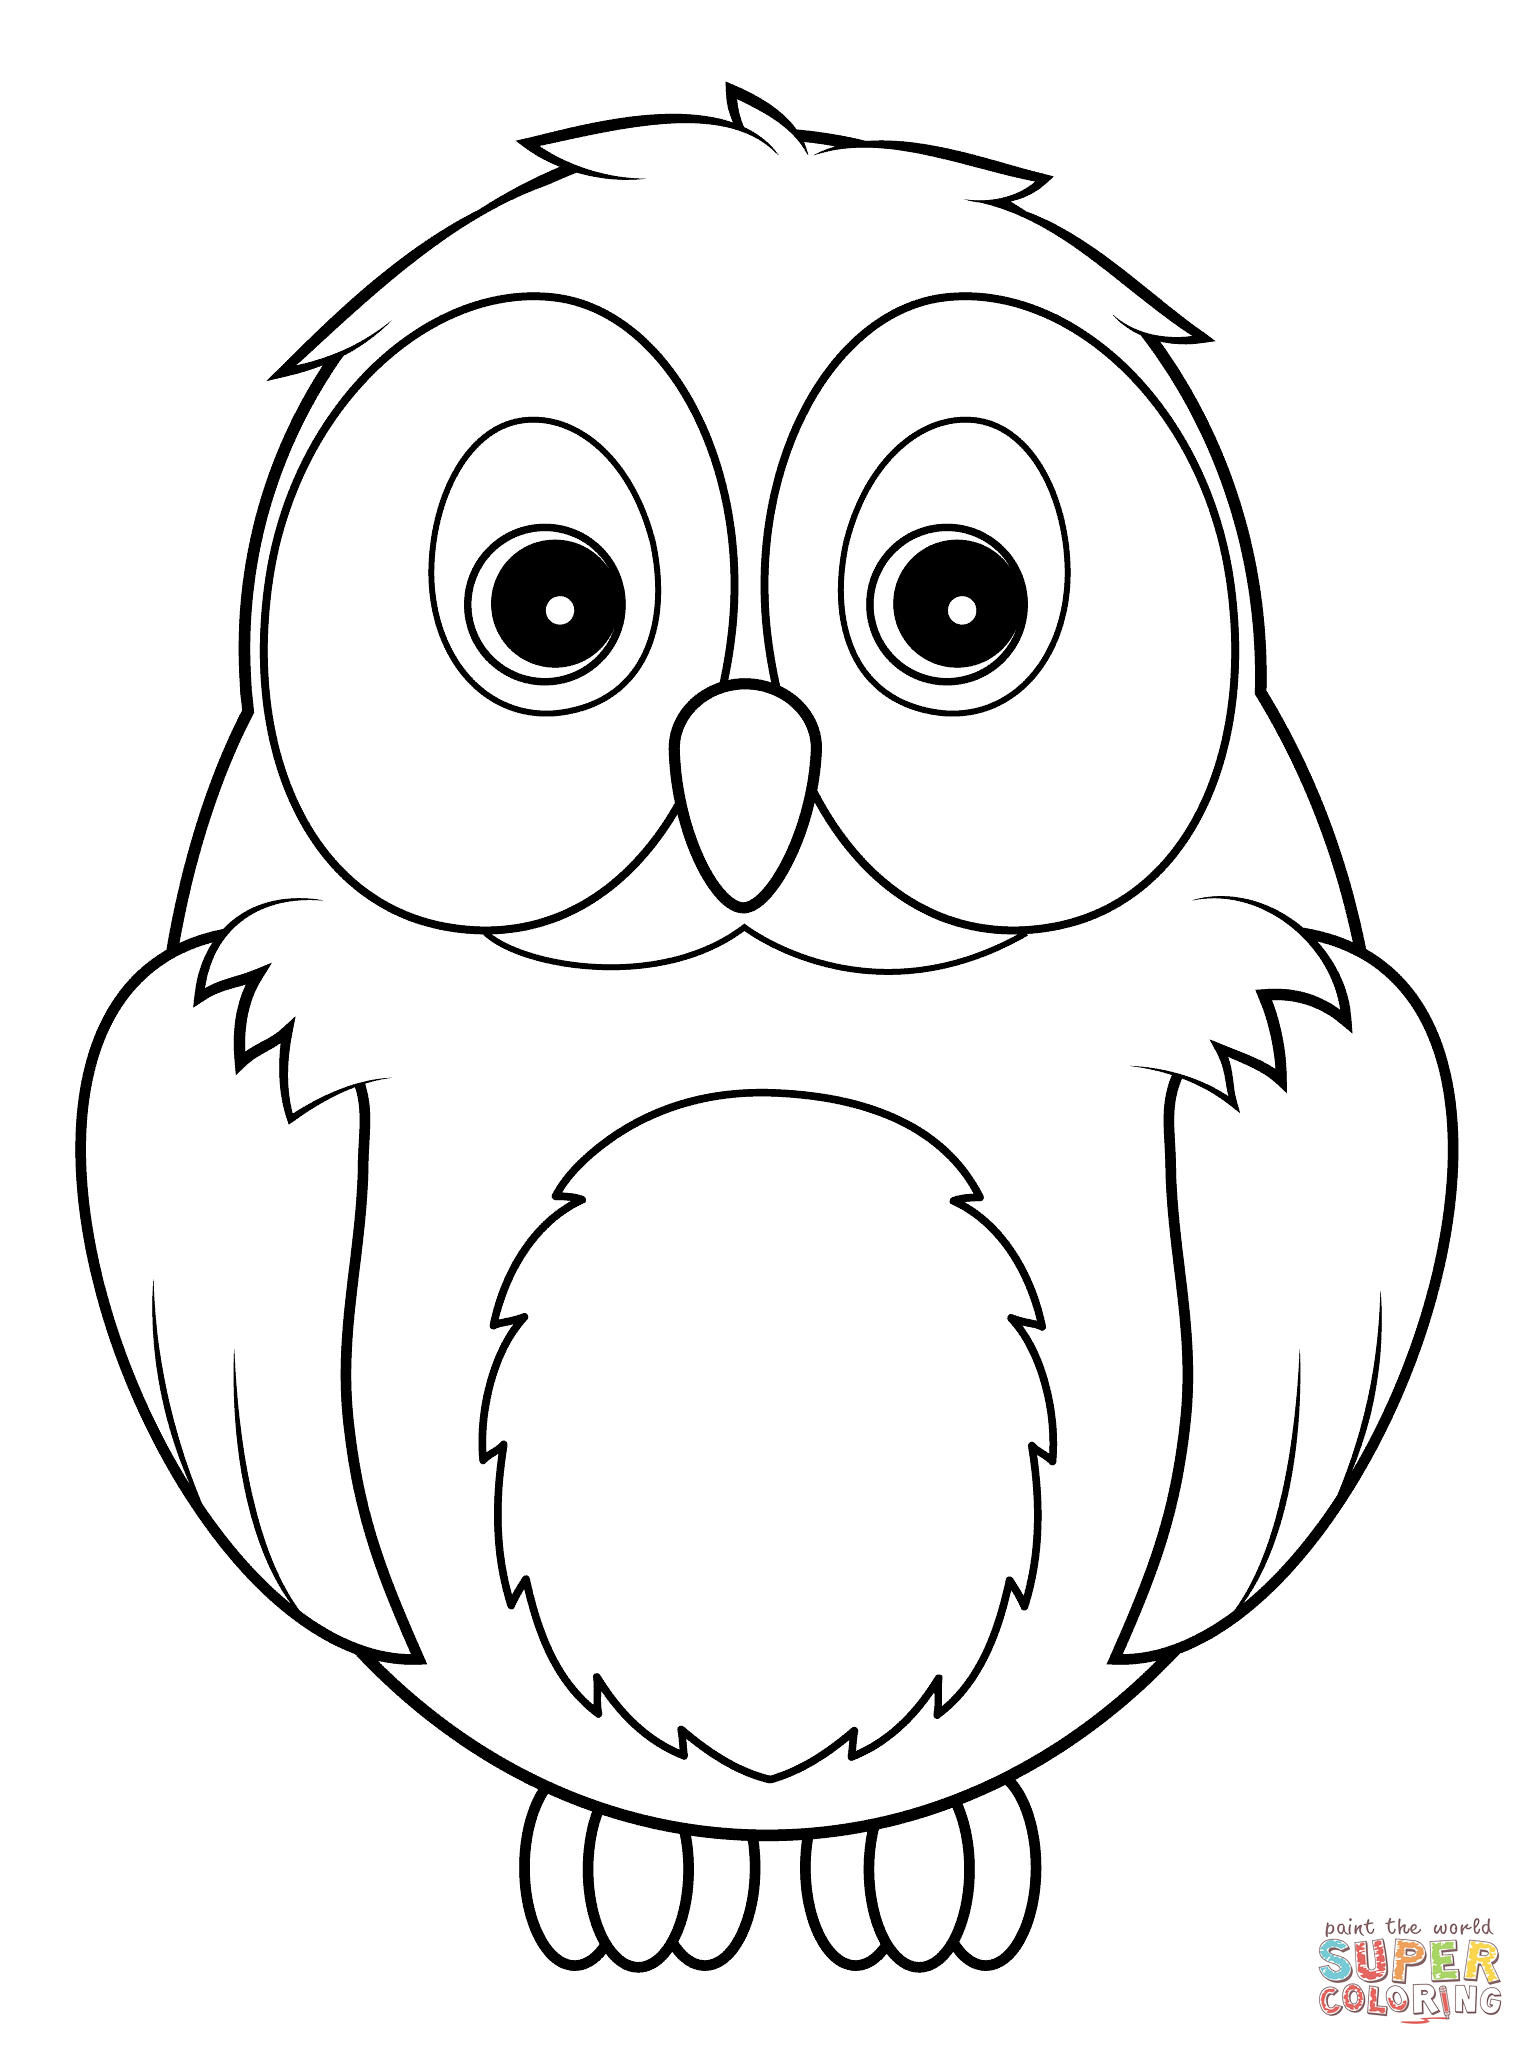 colouring picture of owl owl coloring pages for adults free detailed owl coloring picture colouring of owl